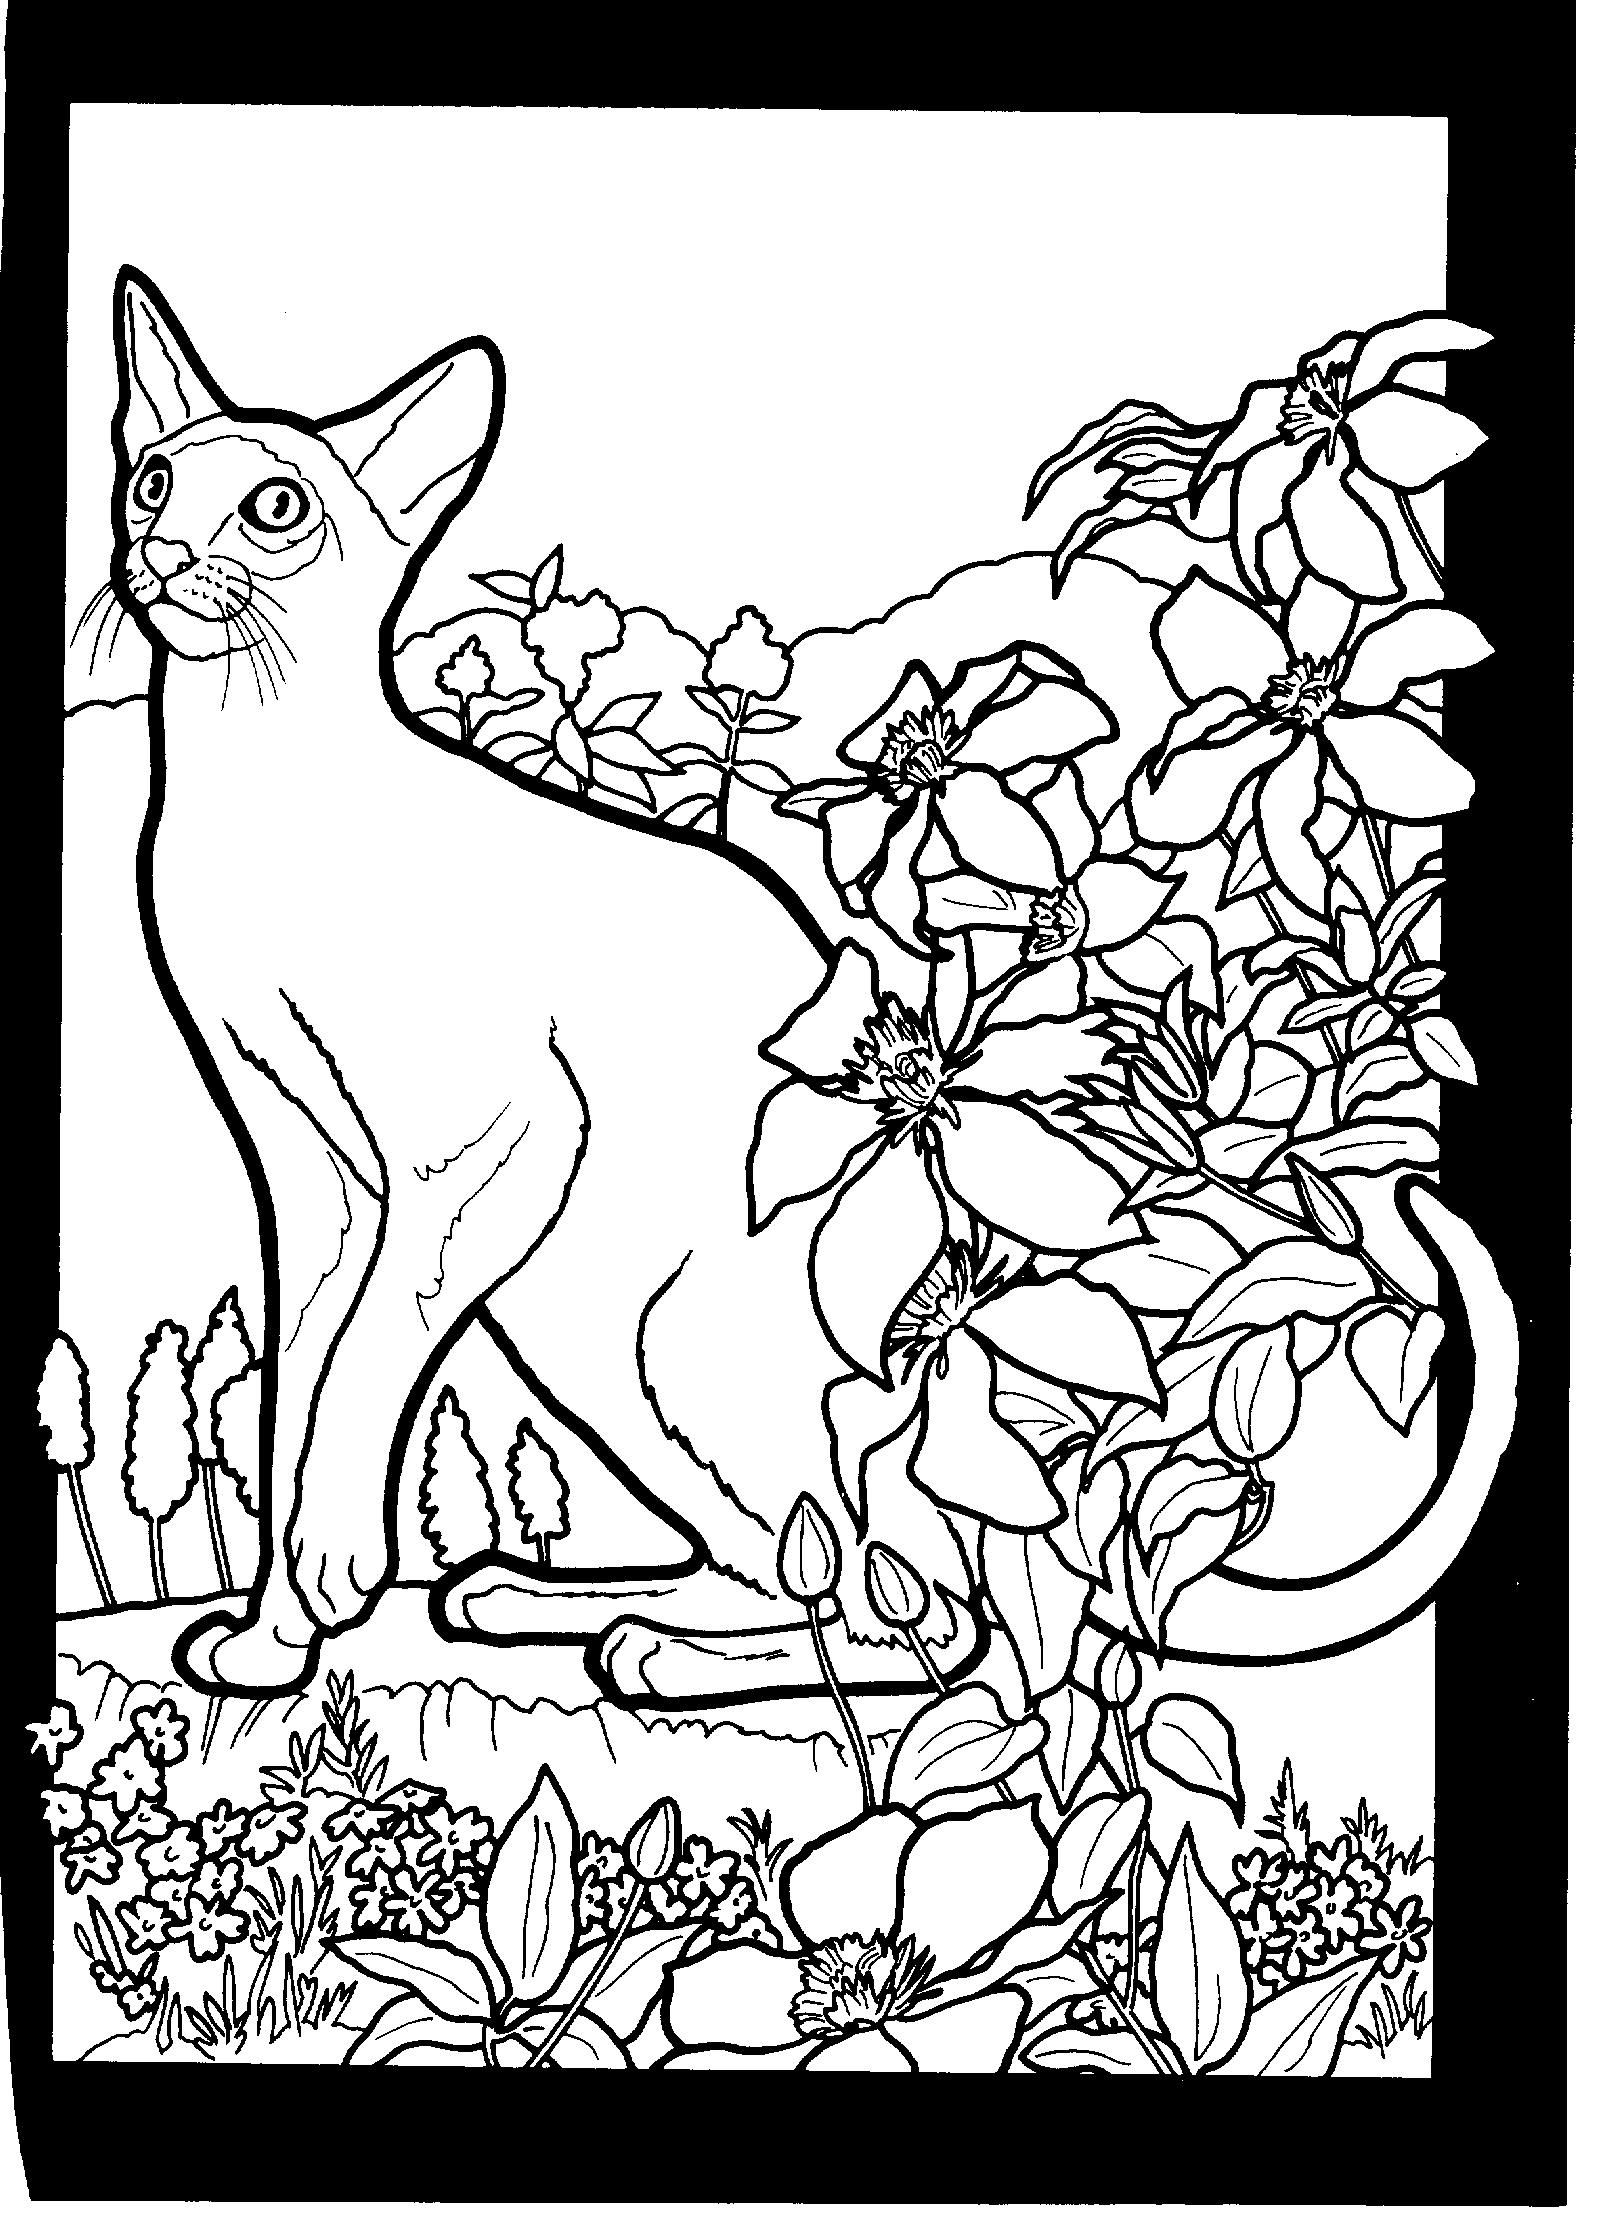 siamese coloring pages siamese cat coloring pages dbestcoloringpagescom cat pages siamese coloring